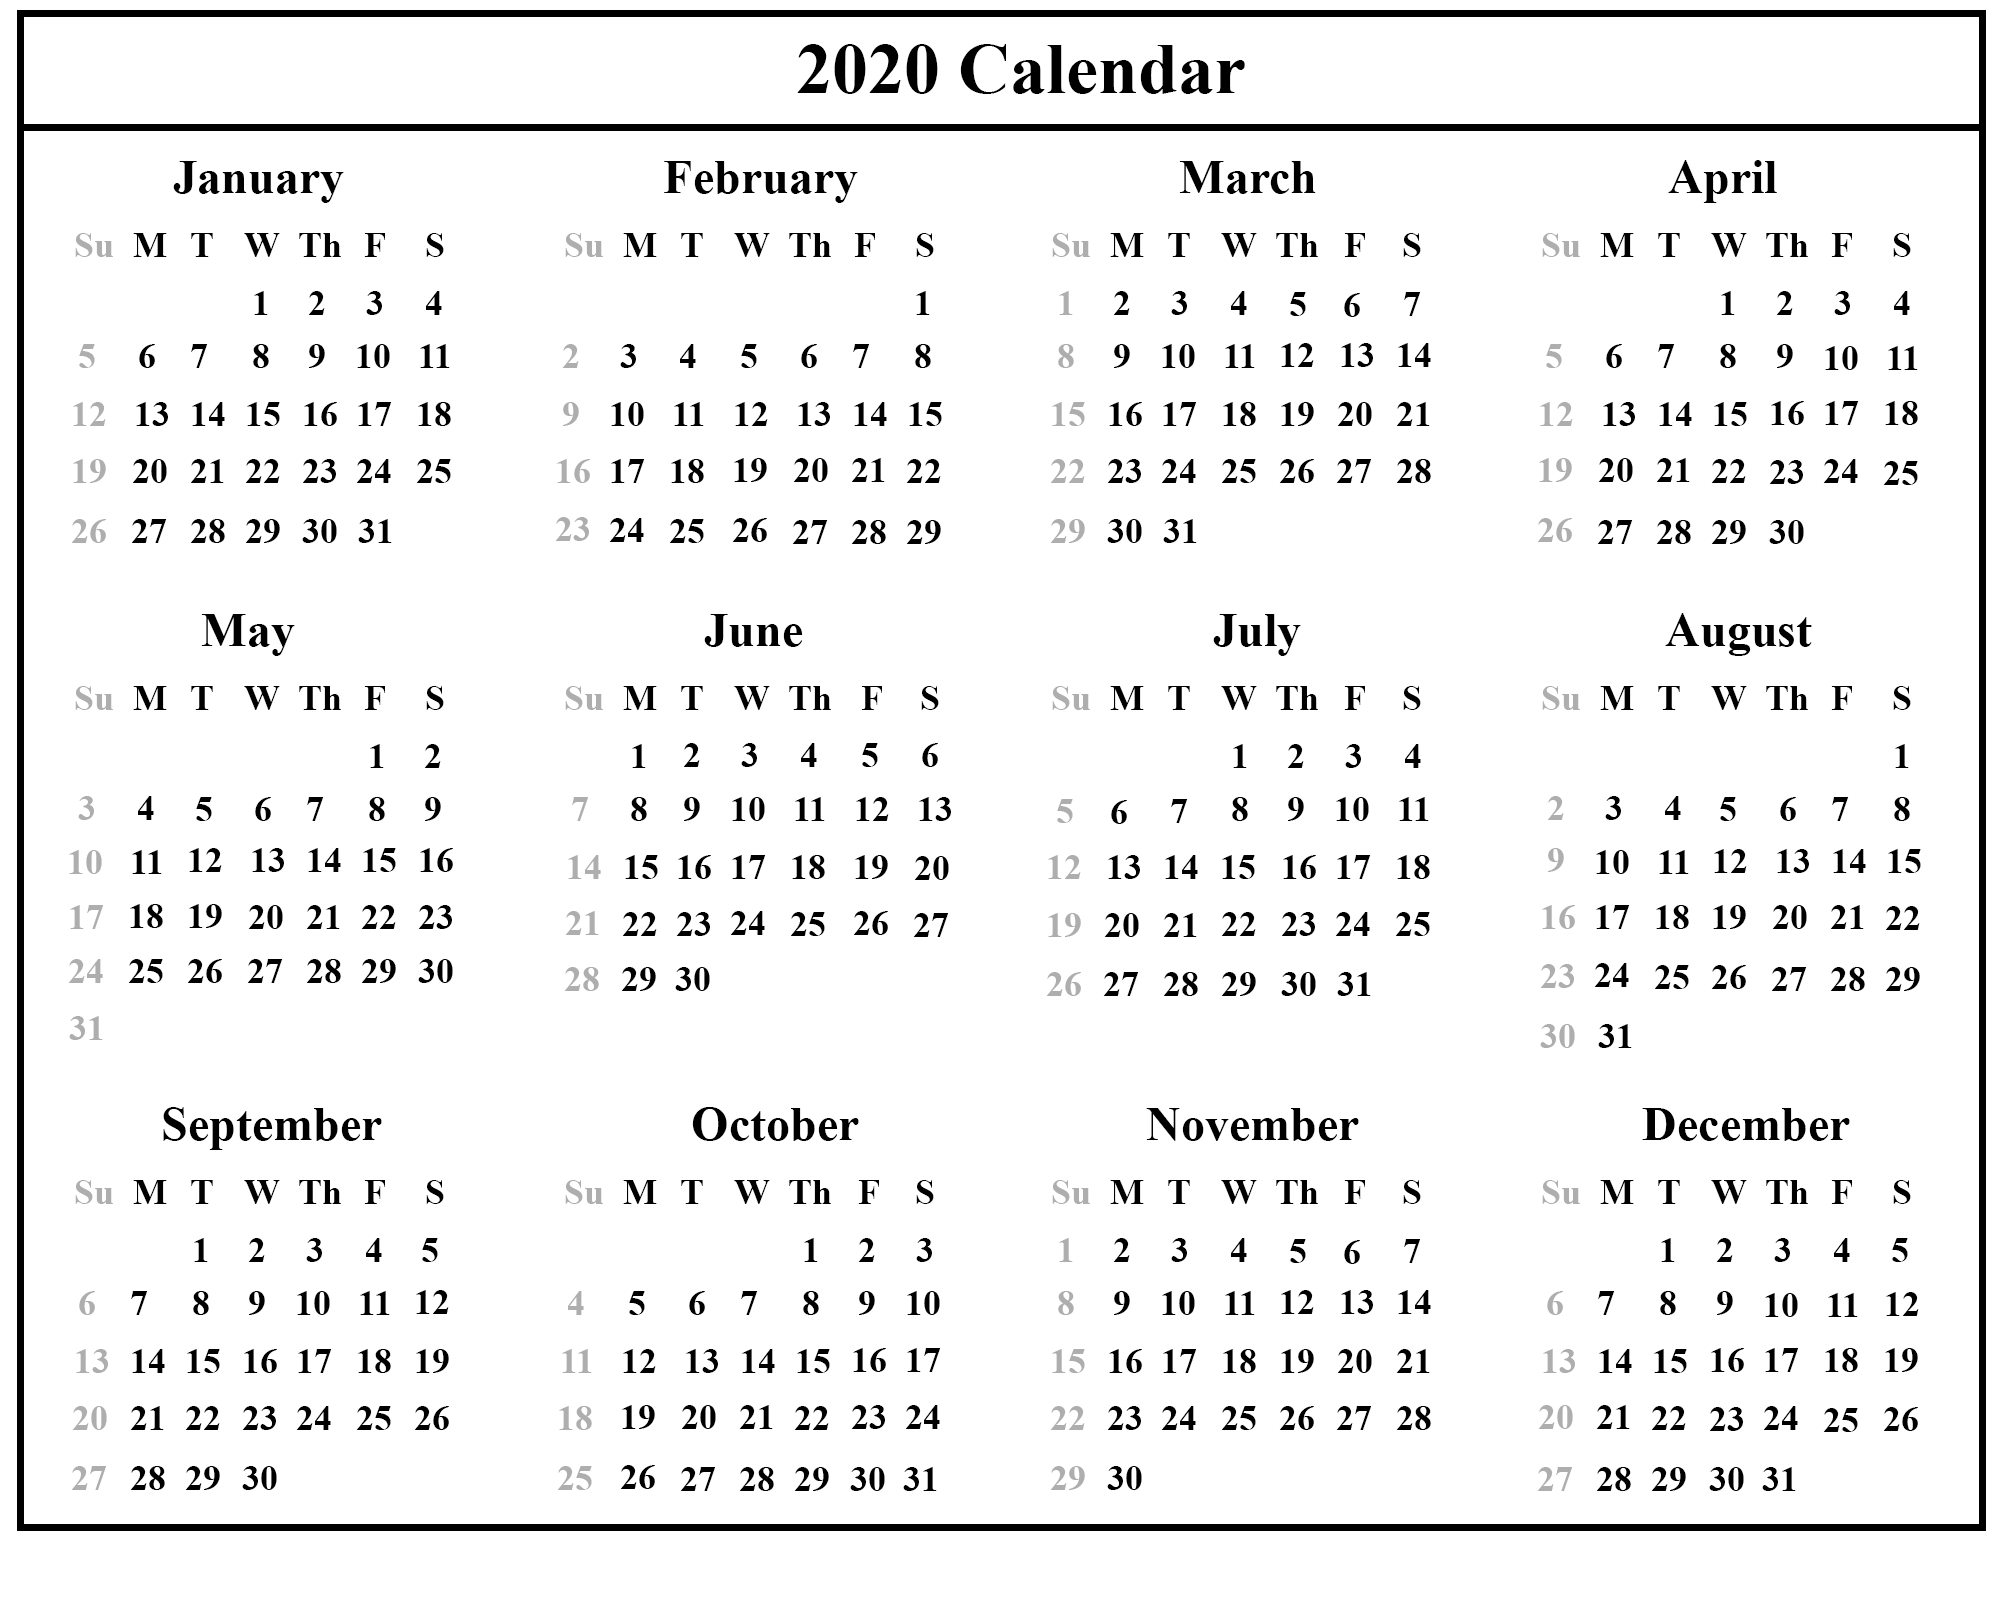 Free Printable Australia Calendar 2020 In Pdf, Excel & Word Format throughout 2020 Calendars To Fill In